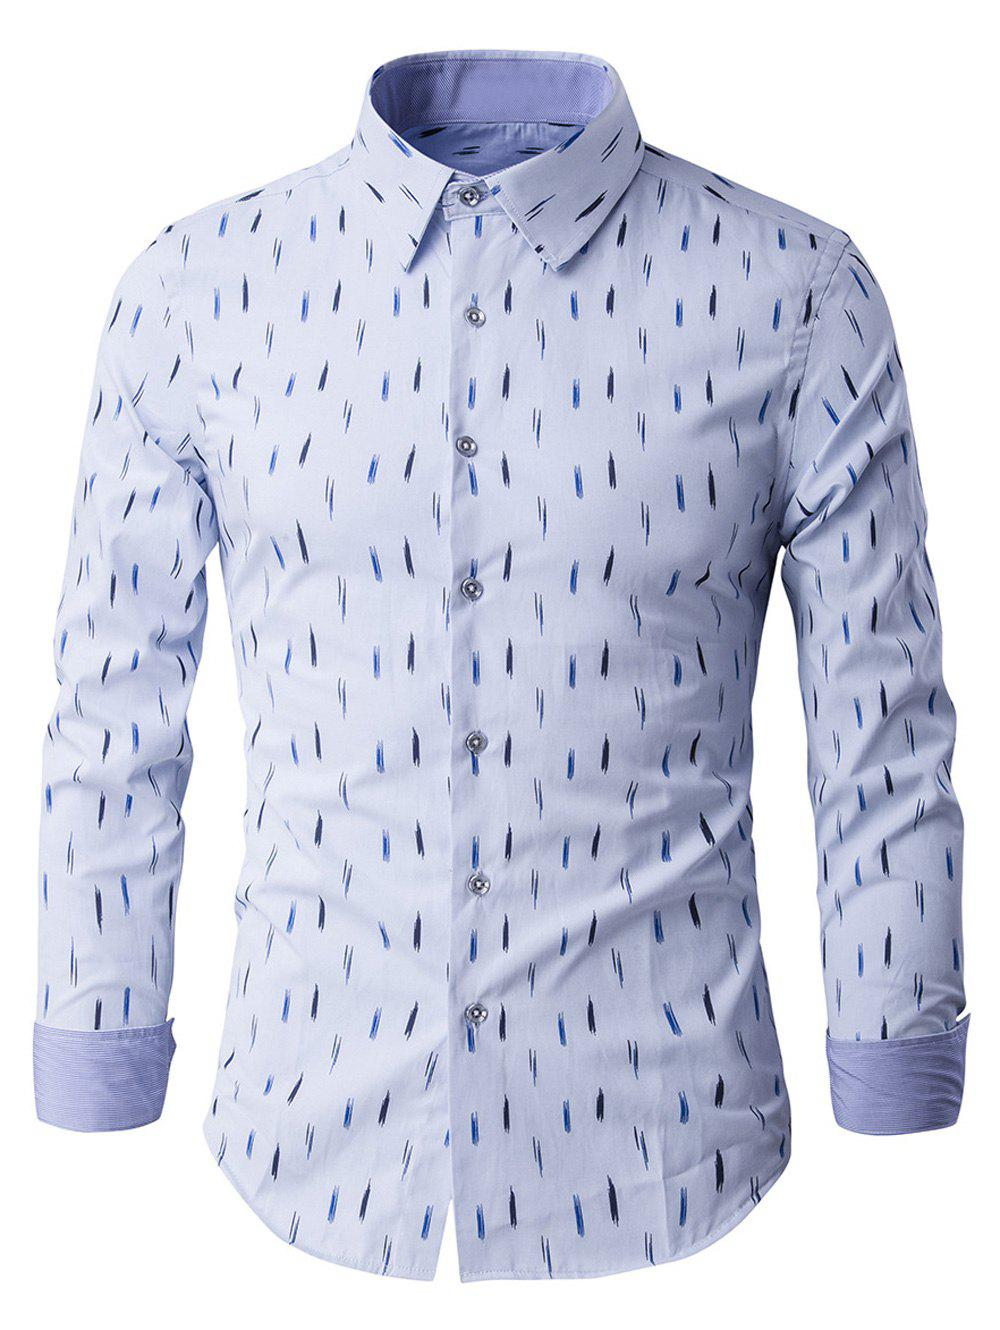 Line Print Turn Down Collar Long Sleeve Men's Shirt - LIGHT BLUE XL